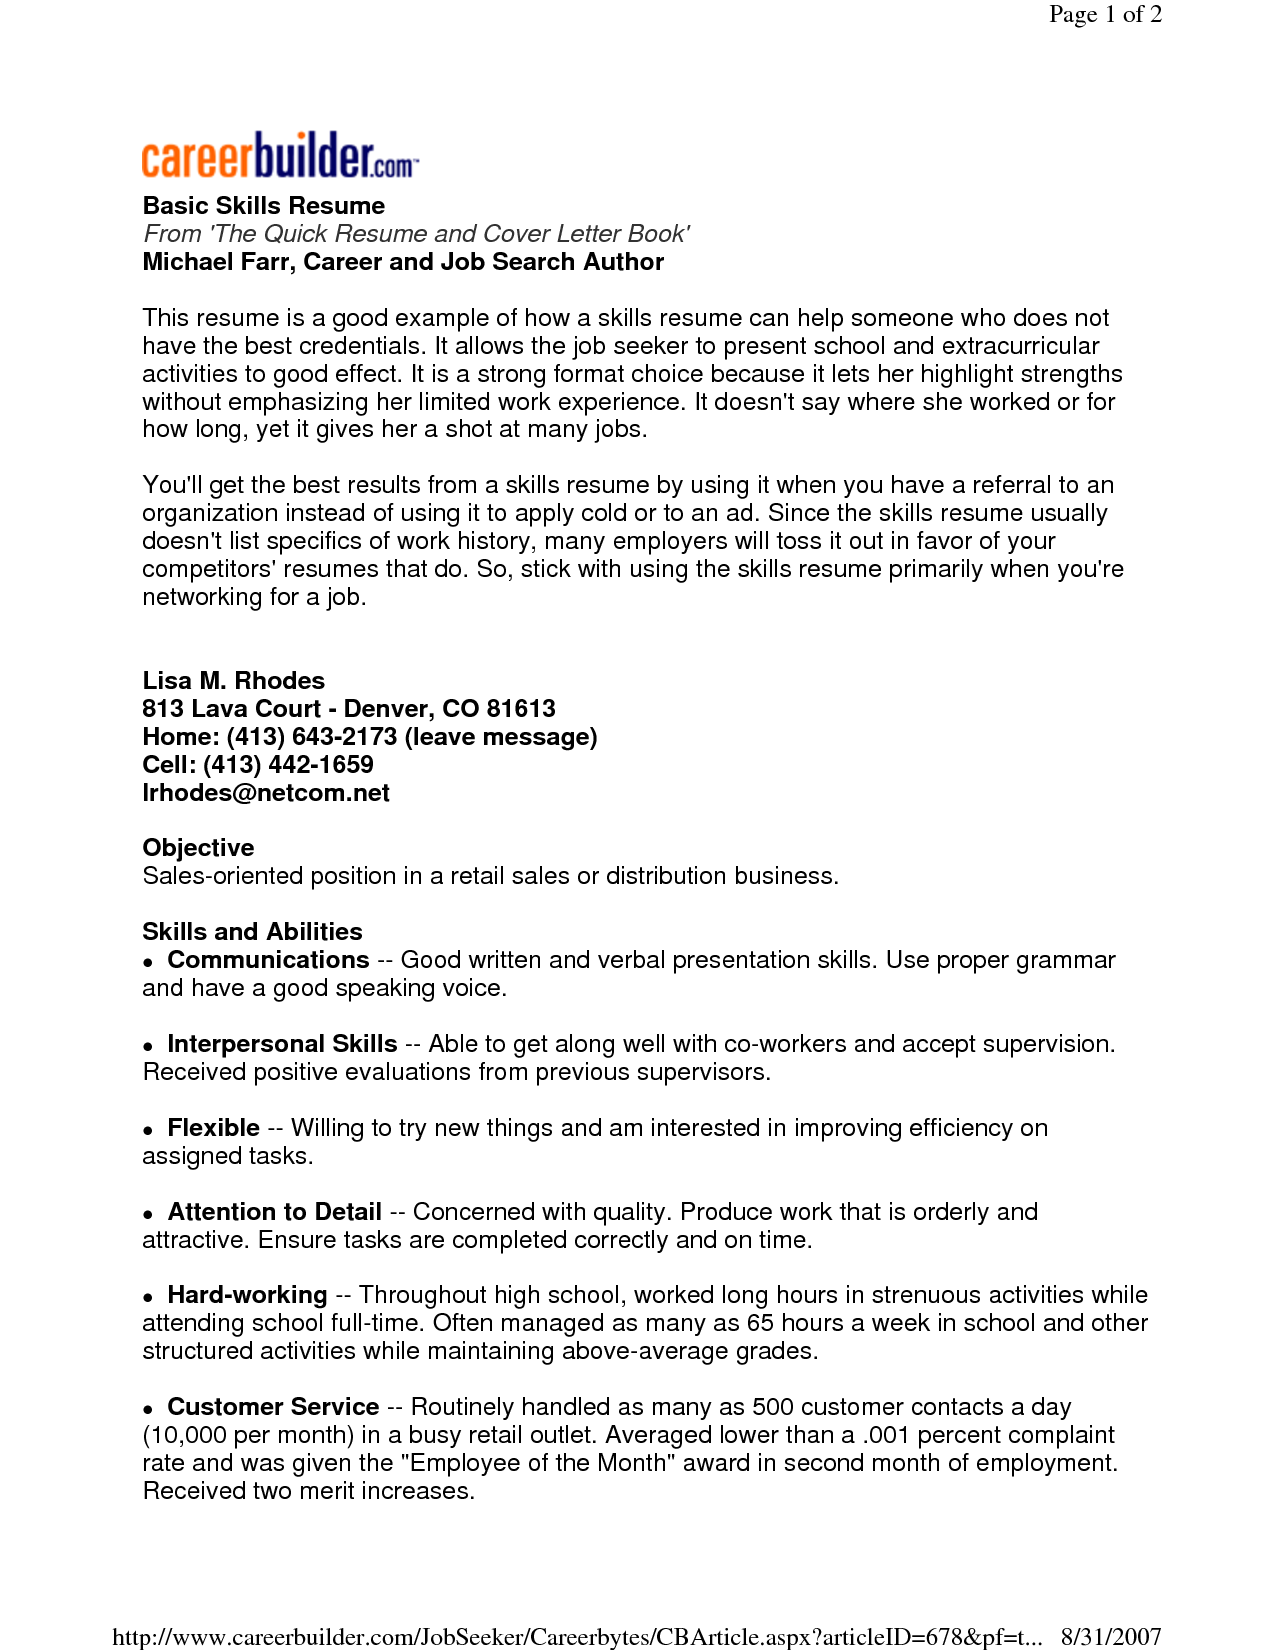 [ Example Resume Basic Computer Skills Summary Skill Sample Resumes Cover  Letters Interviews Assembly And ]   Best Free Home Design Idea U0026 Inspiration  Skills To Put Down On A Resume